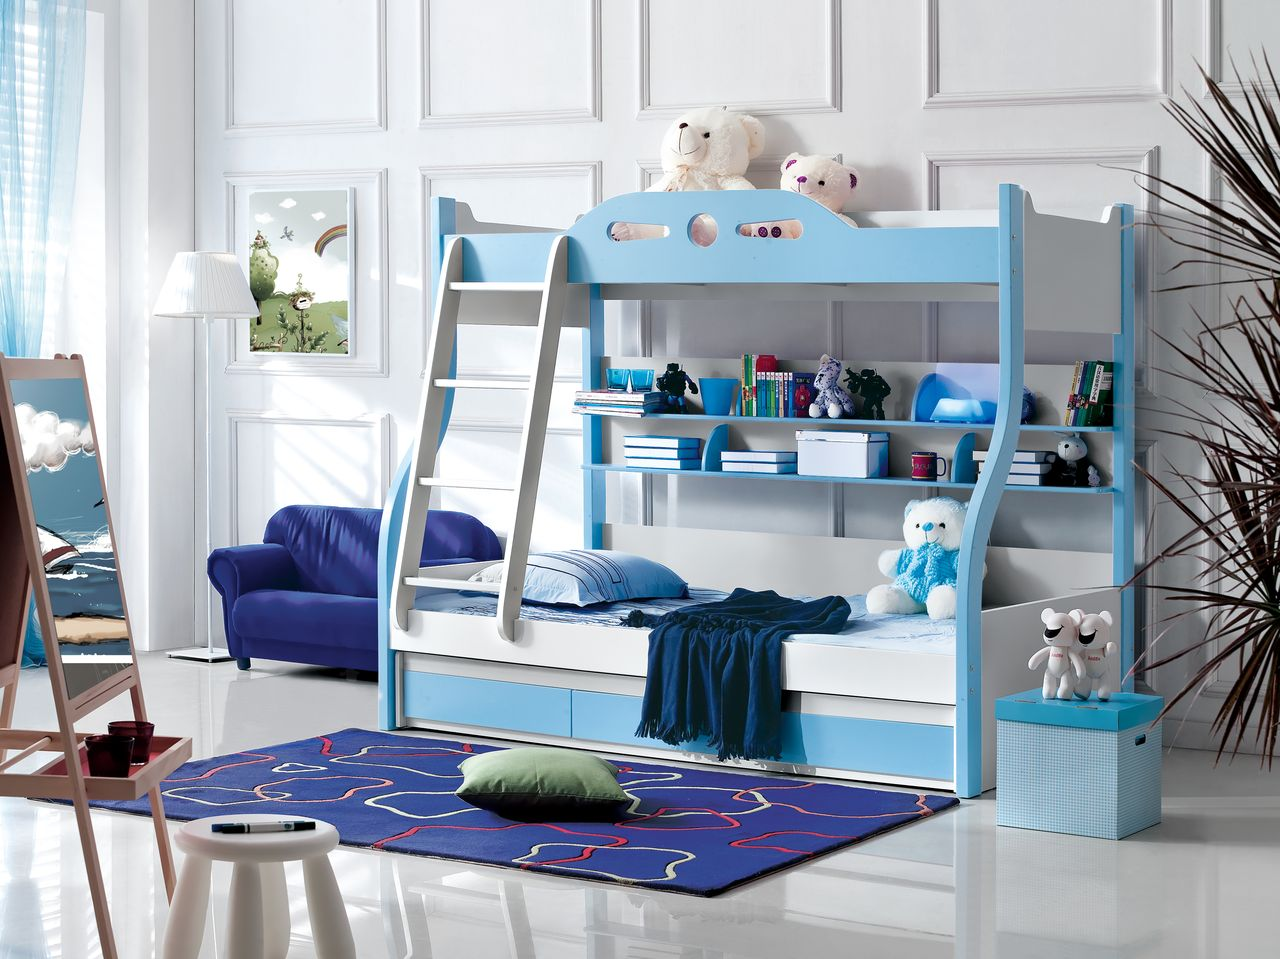 We have compiled a very valuable must-have furniture list for your kid's room!